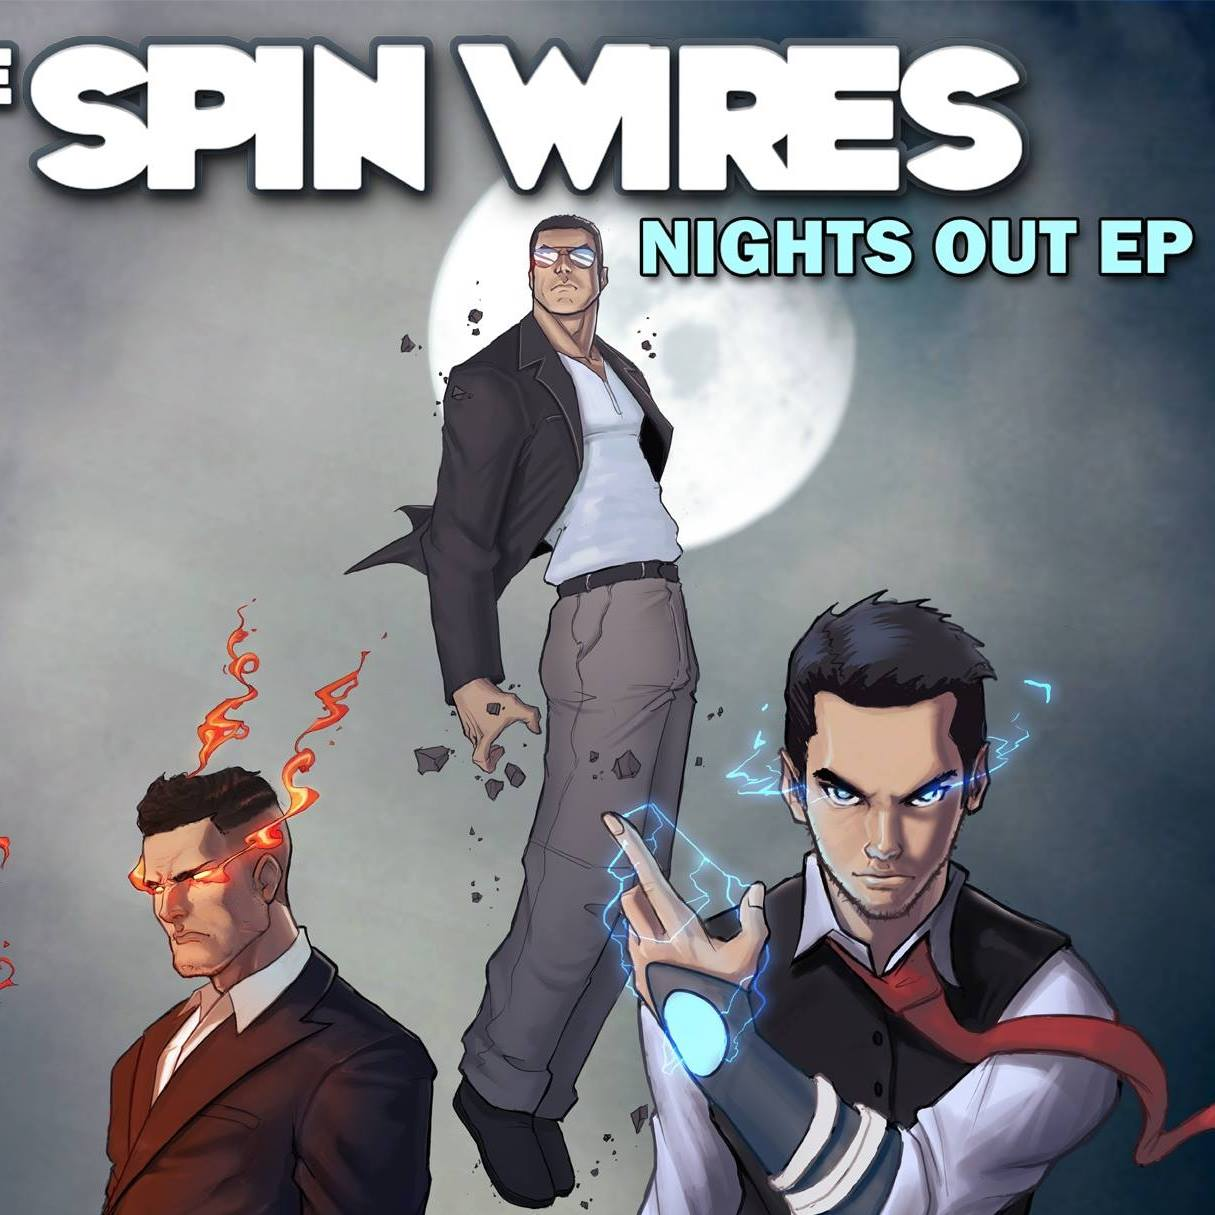 The Spin Wires